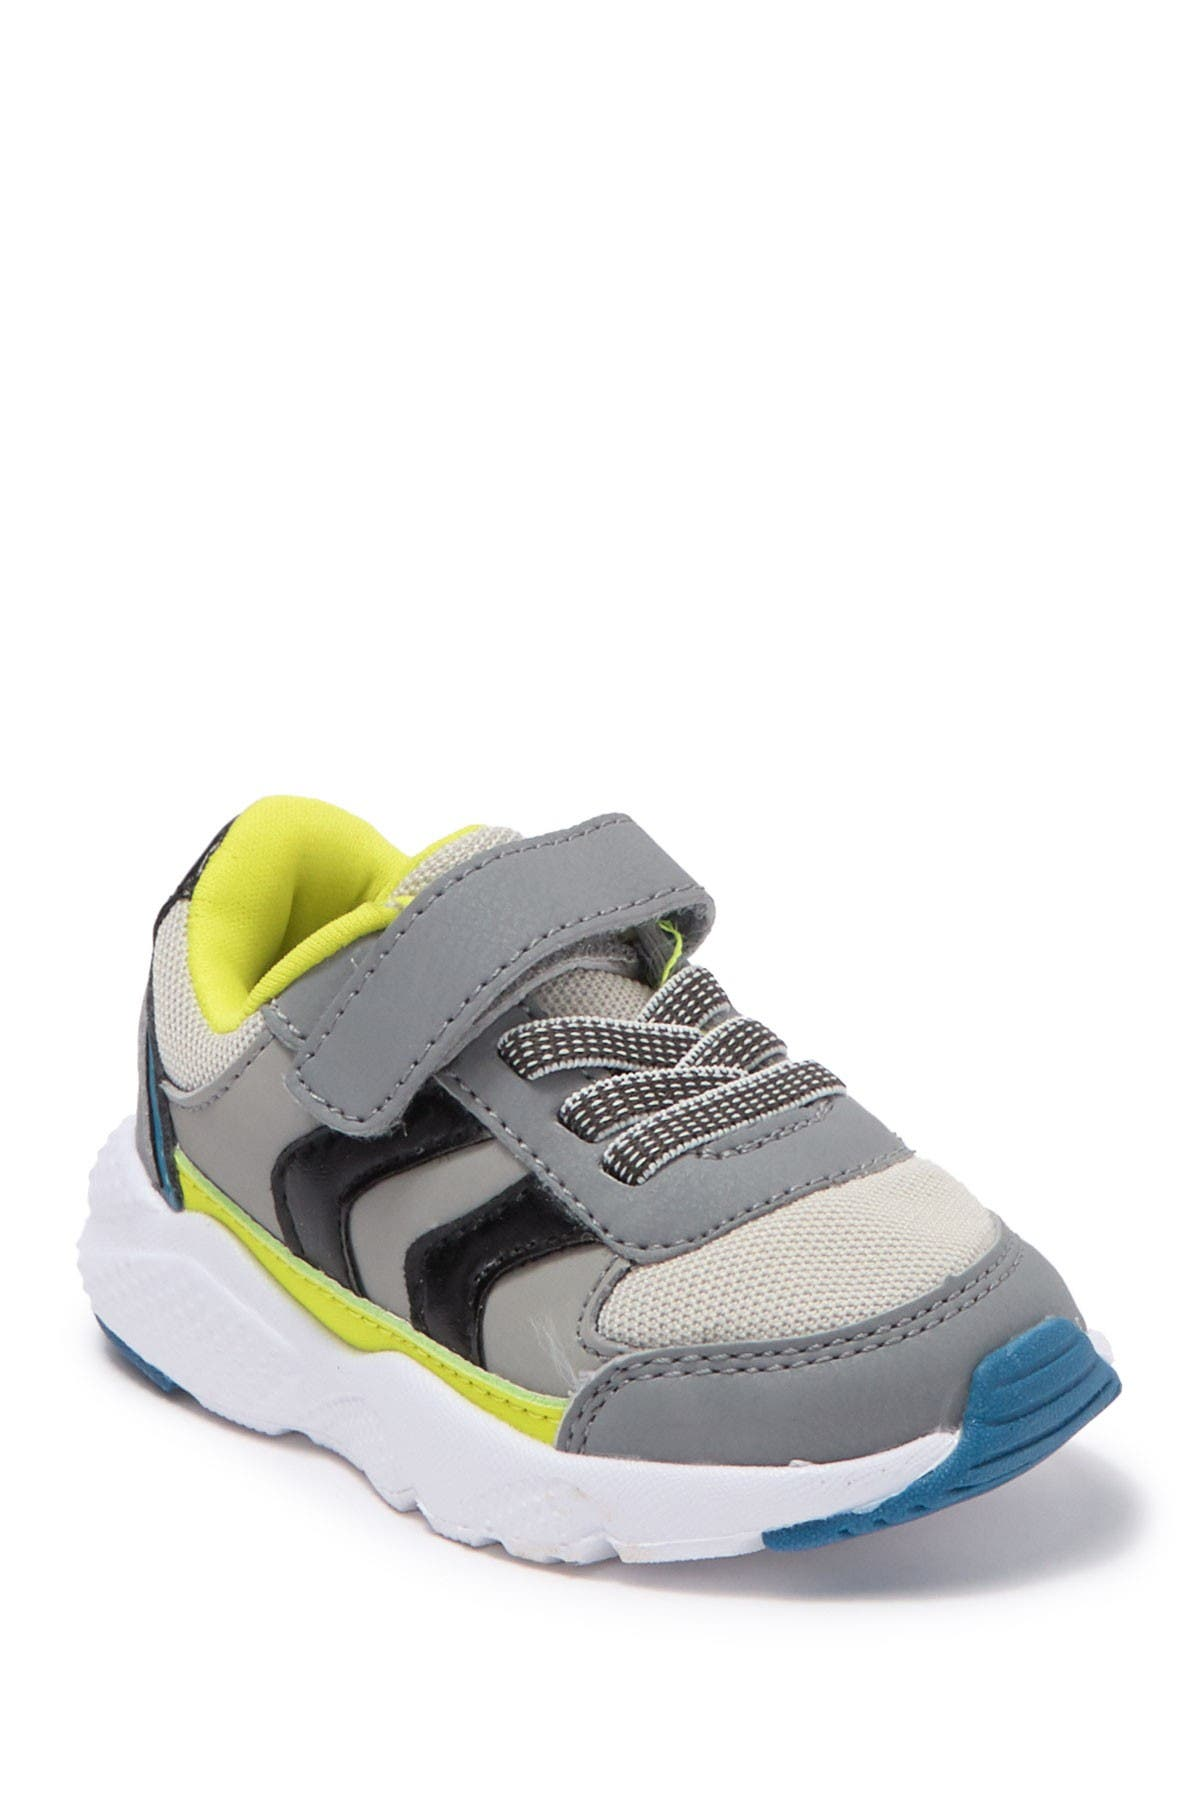 Image of Dr. Scholl's Kayson Sneaker